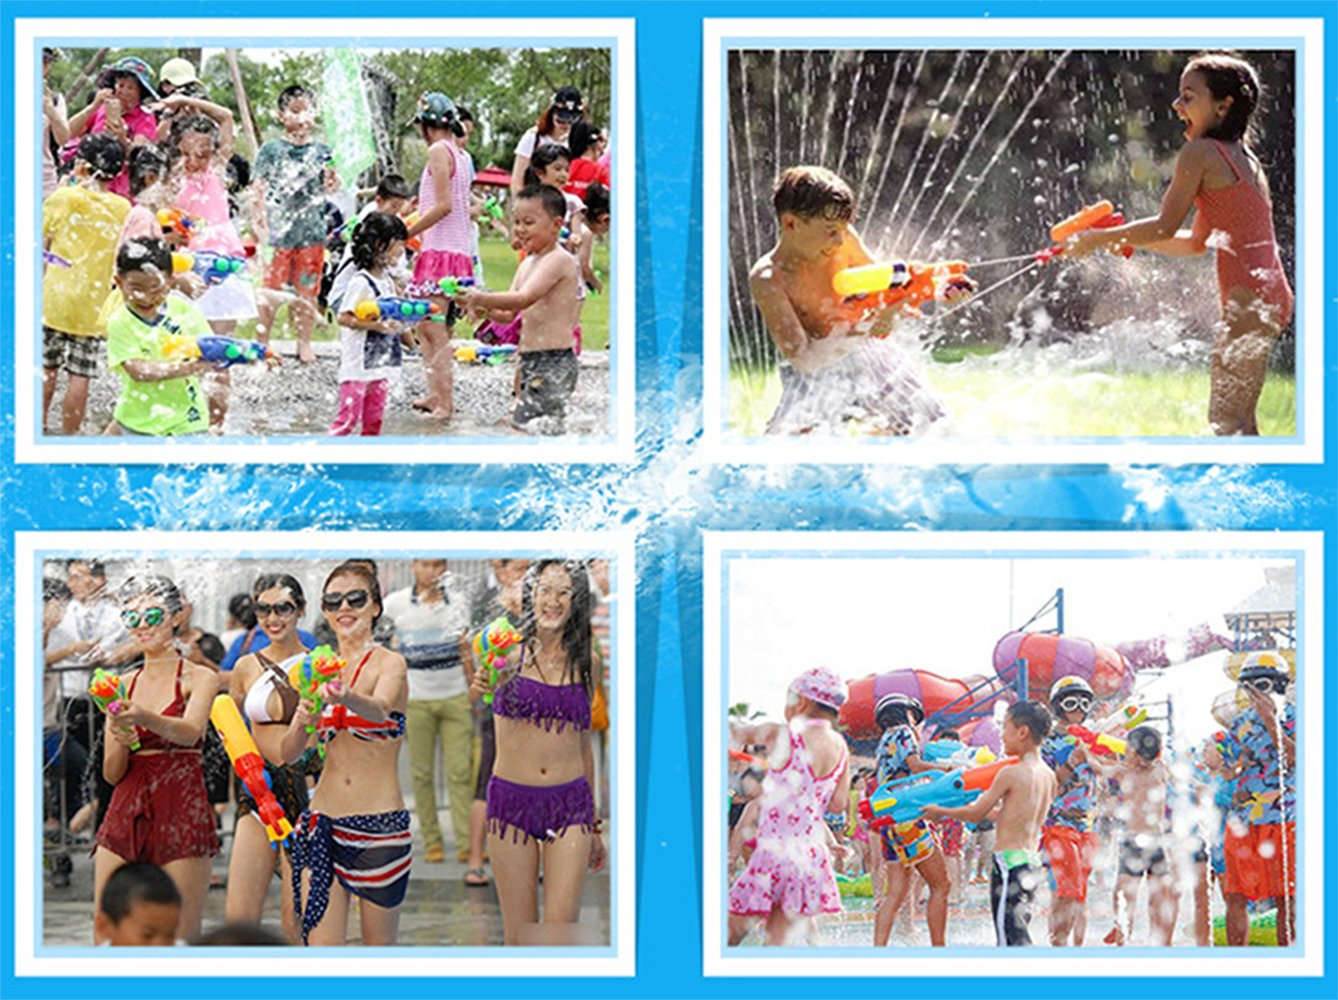 Water Gun Children Sports Fitness Toy Bow Arrow B & T Super Water Gun Soak Gun Pistol Gun 600CC Capacity Summer Party Messenger Water Shooting Pool Beach Water Children Toys Children Adults. by BT (Image #4)